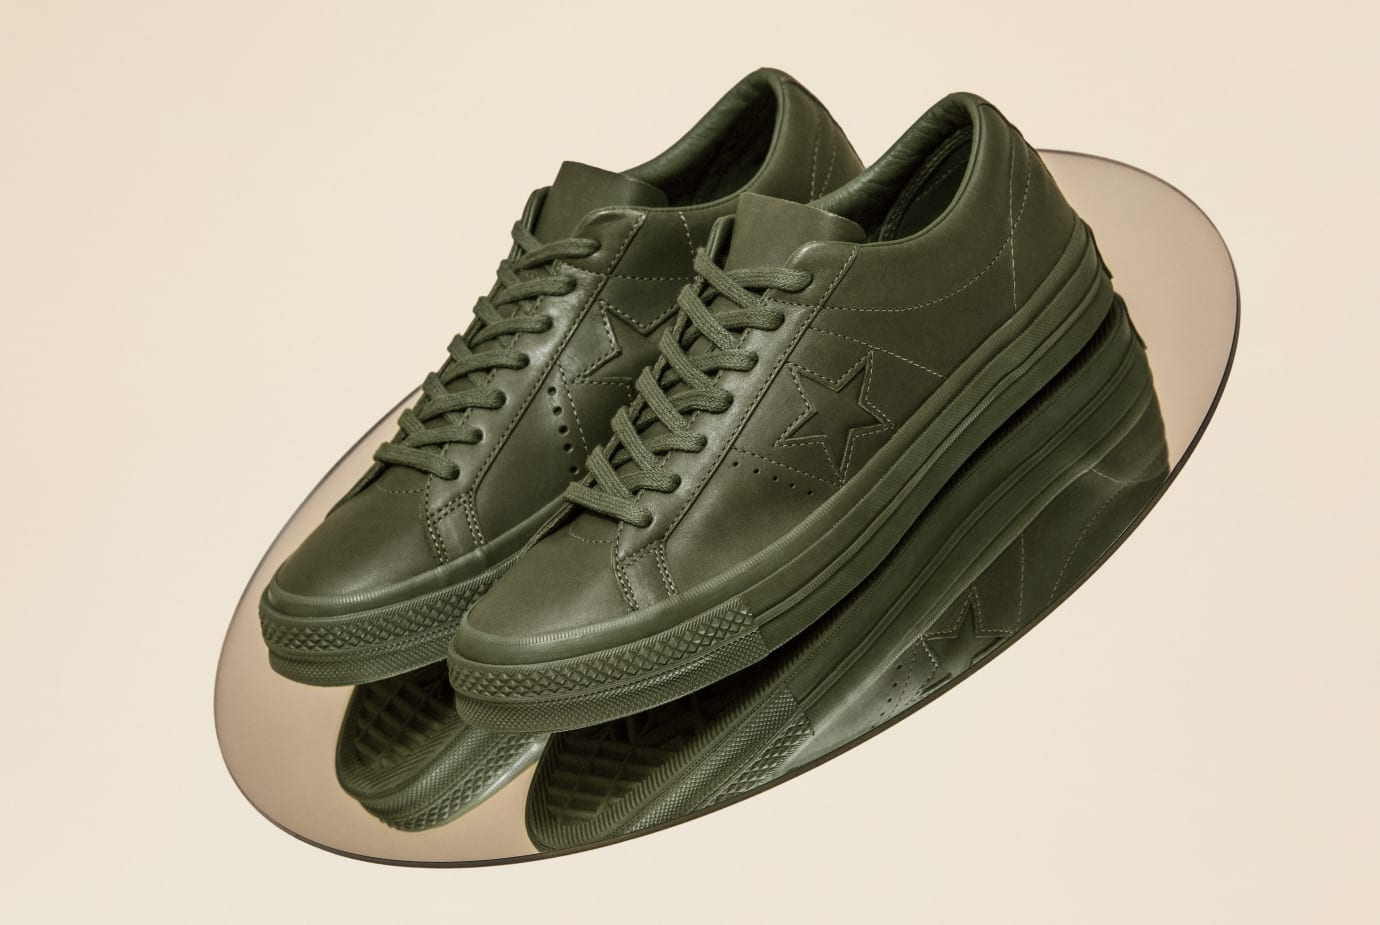 Converse x Engineered Garments One Star Collection (Olive)